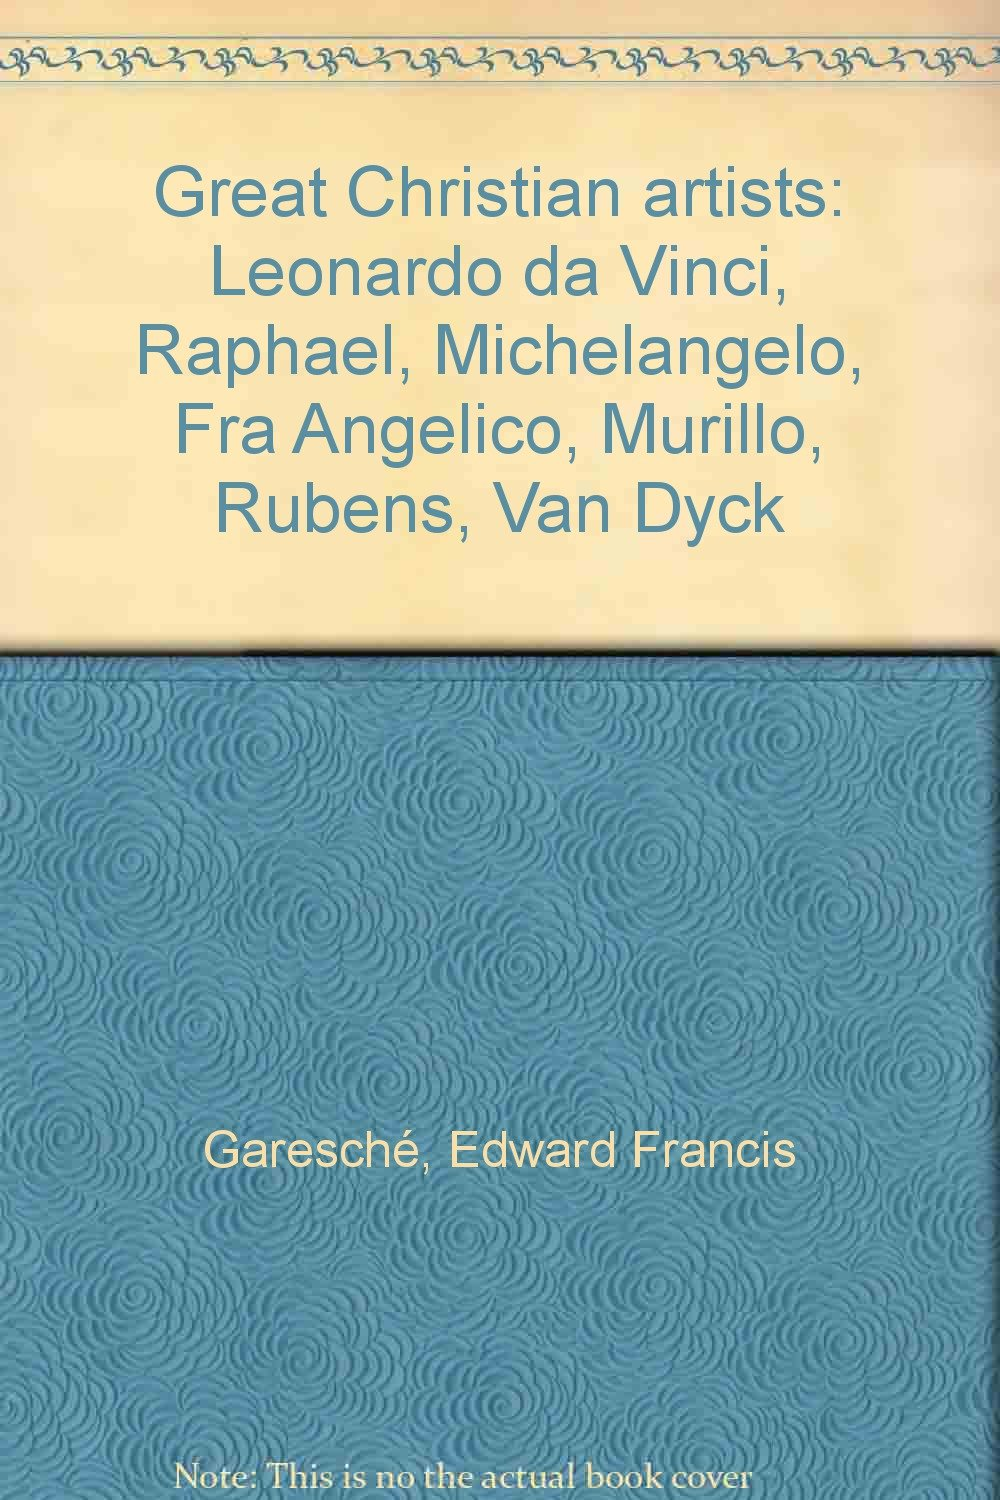 great christian artists leonardo da vinci raphael michelangelo fra angelico murillo rubens van dyck